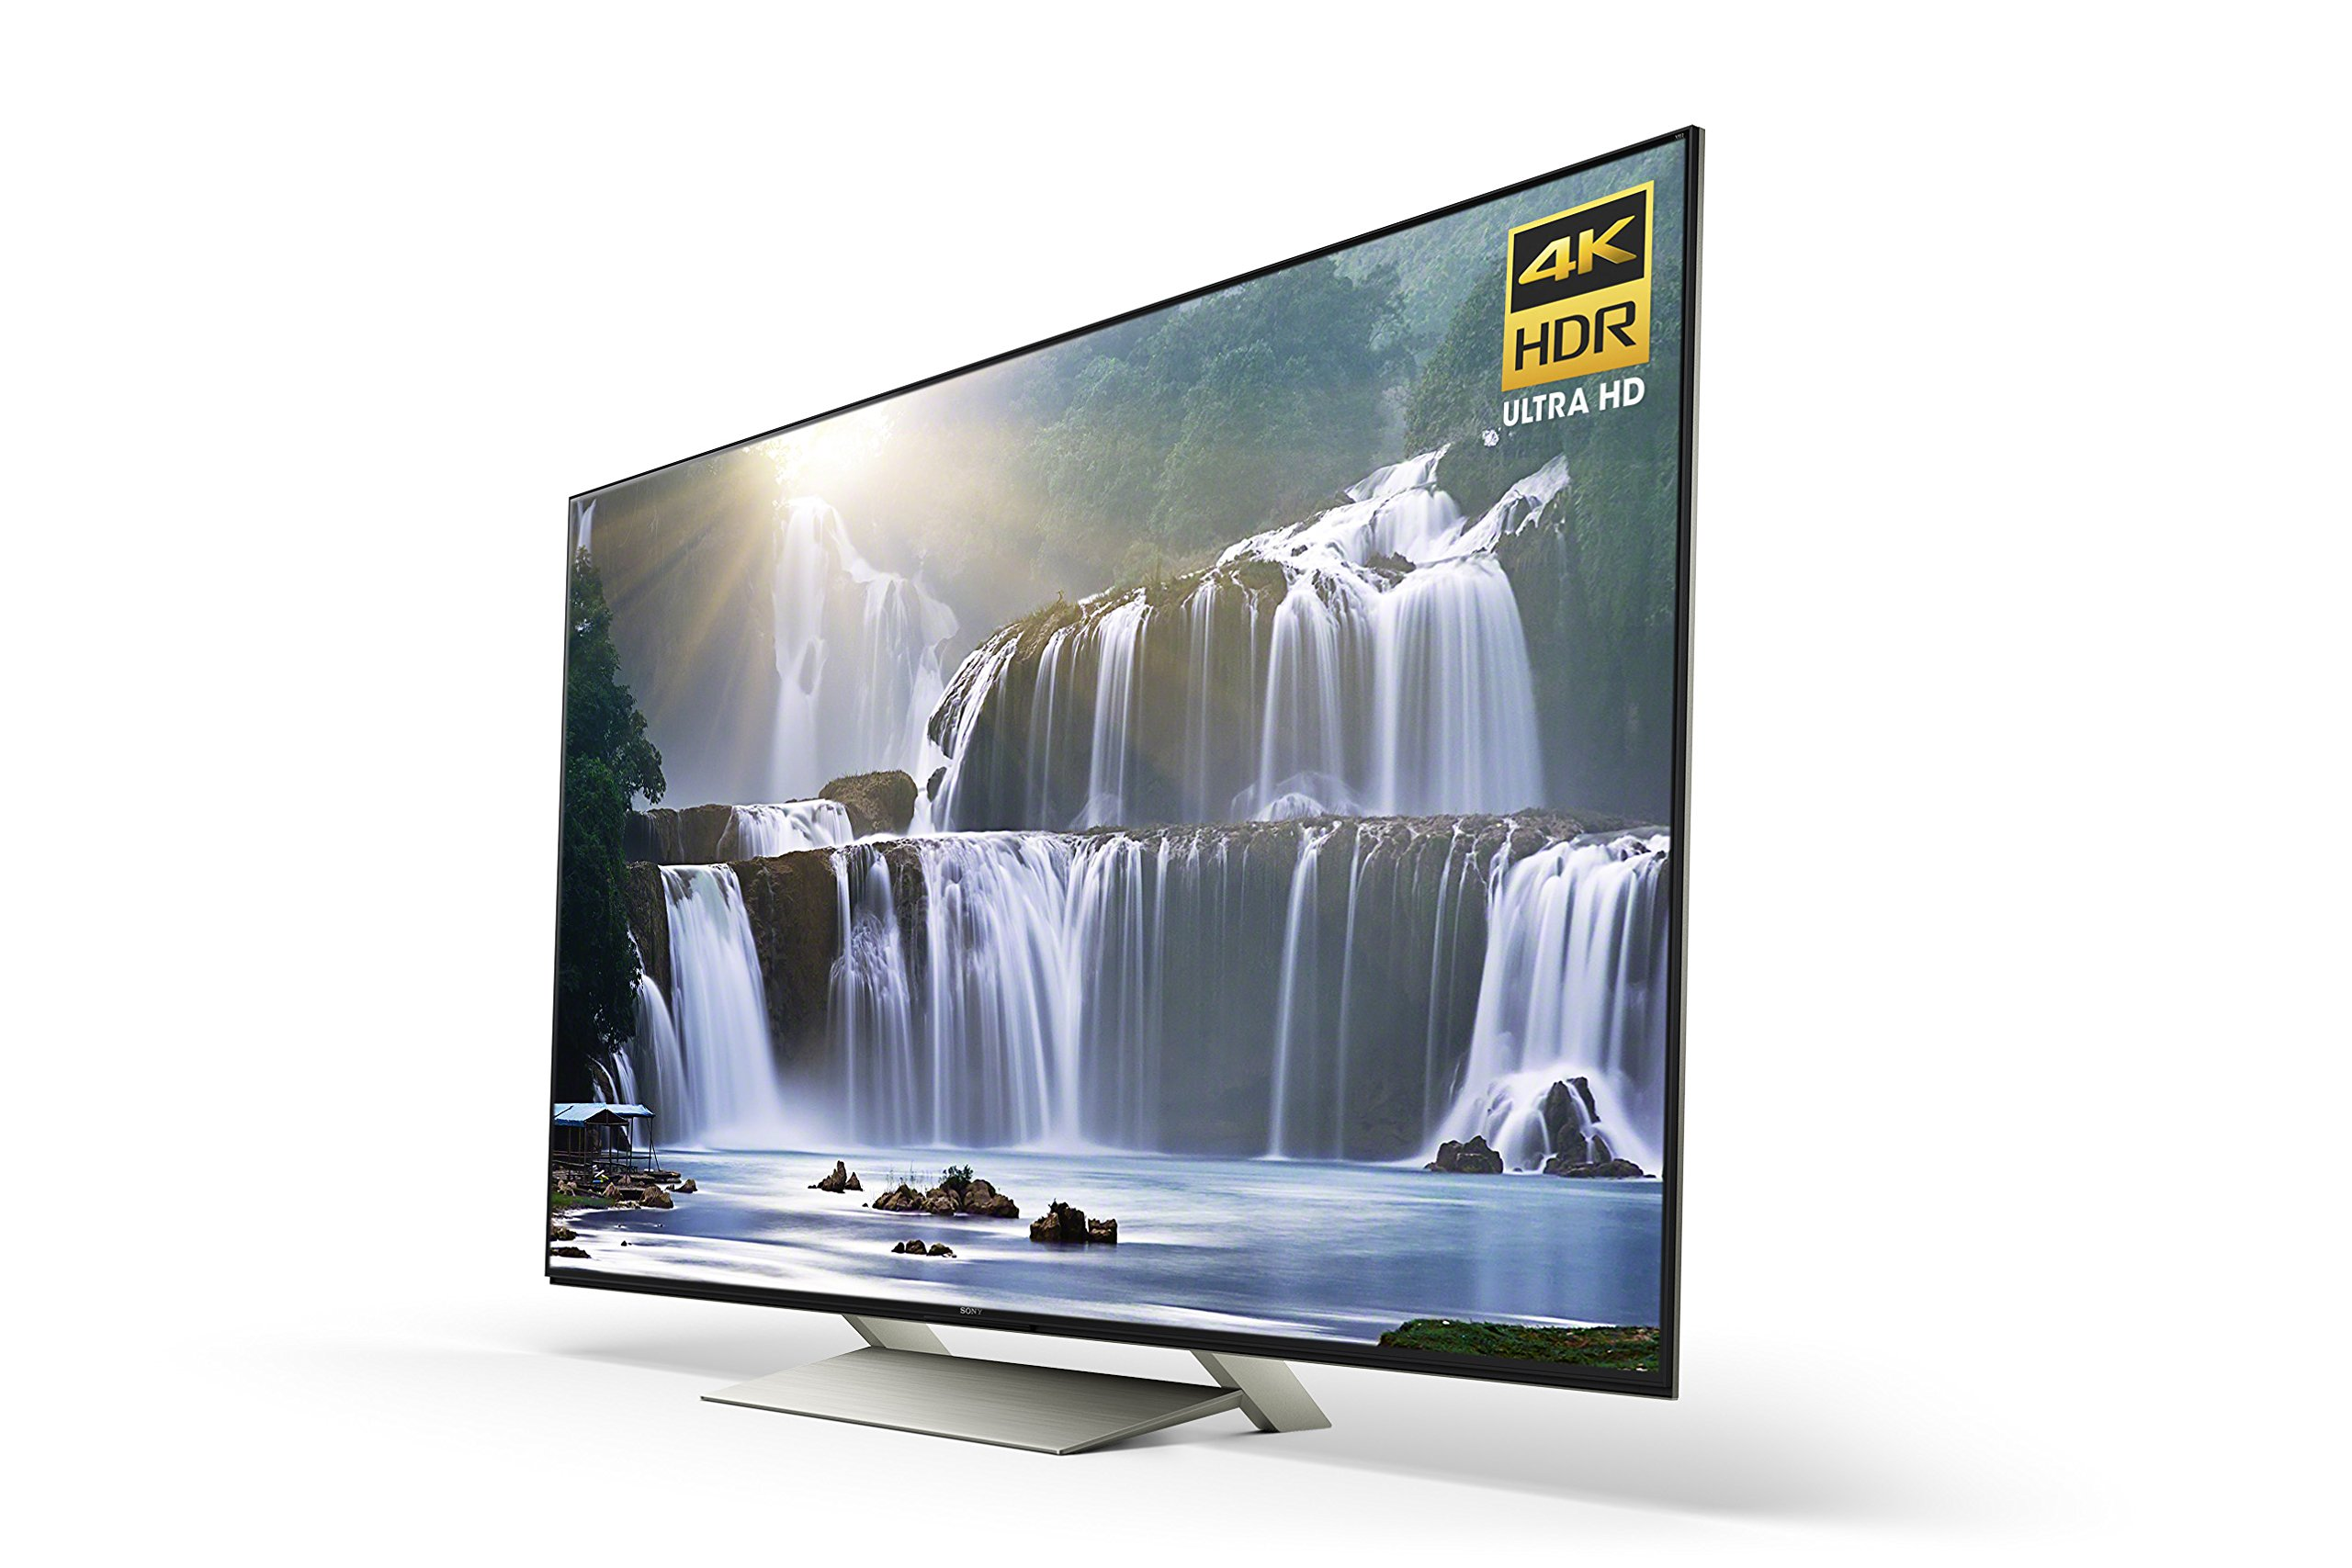 Sony XBR55X930E 55-Inch 4K HDR Ultra HD TV (2017 Model) 3